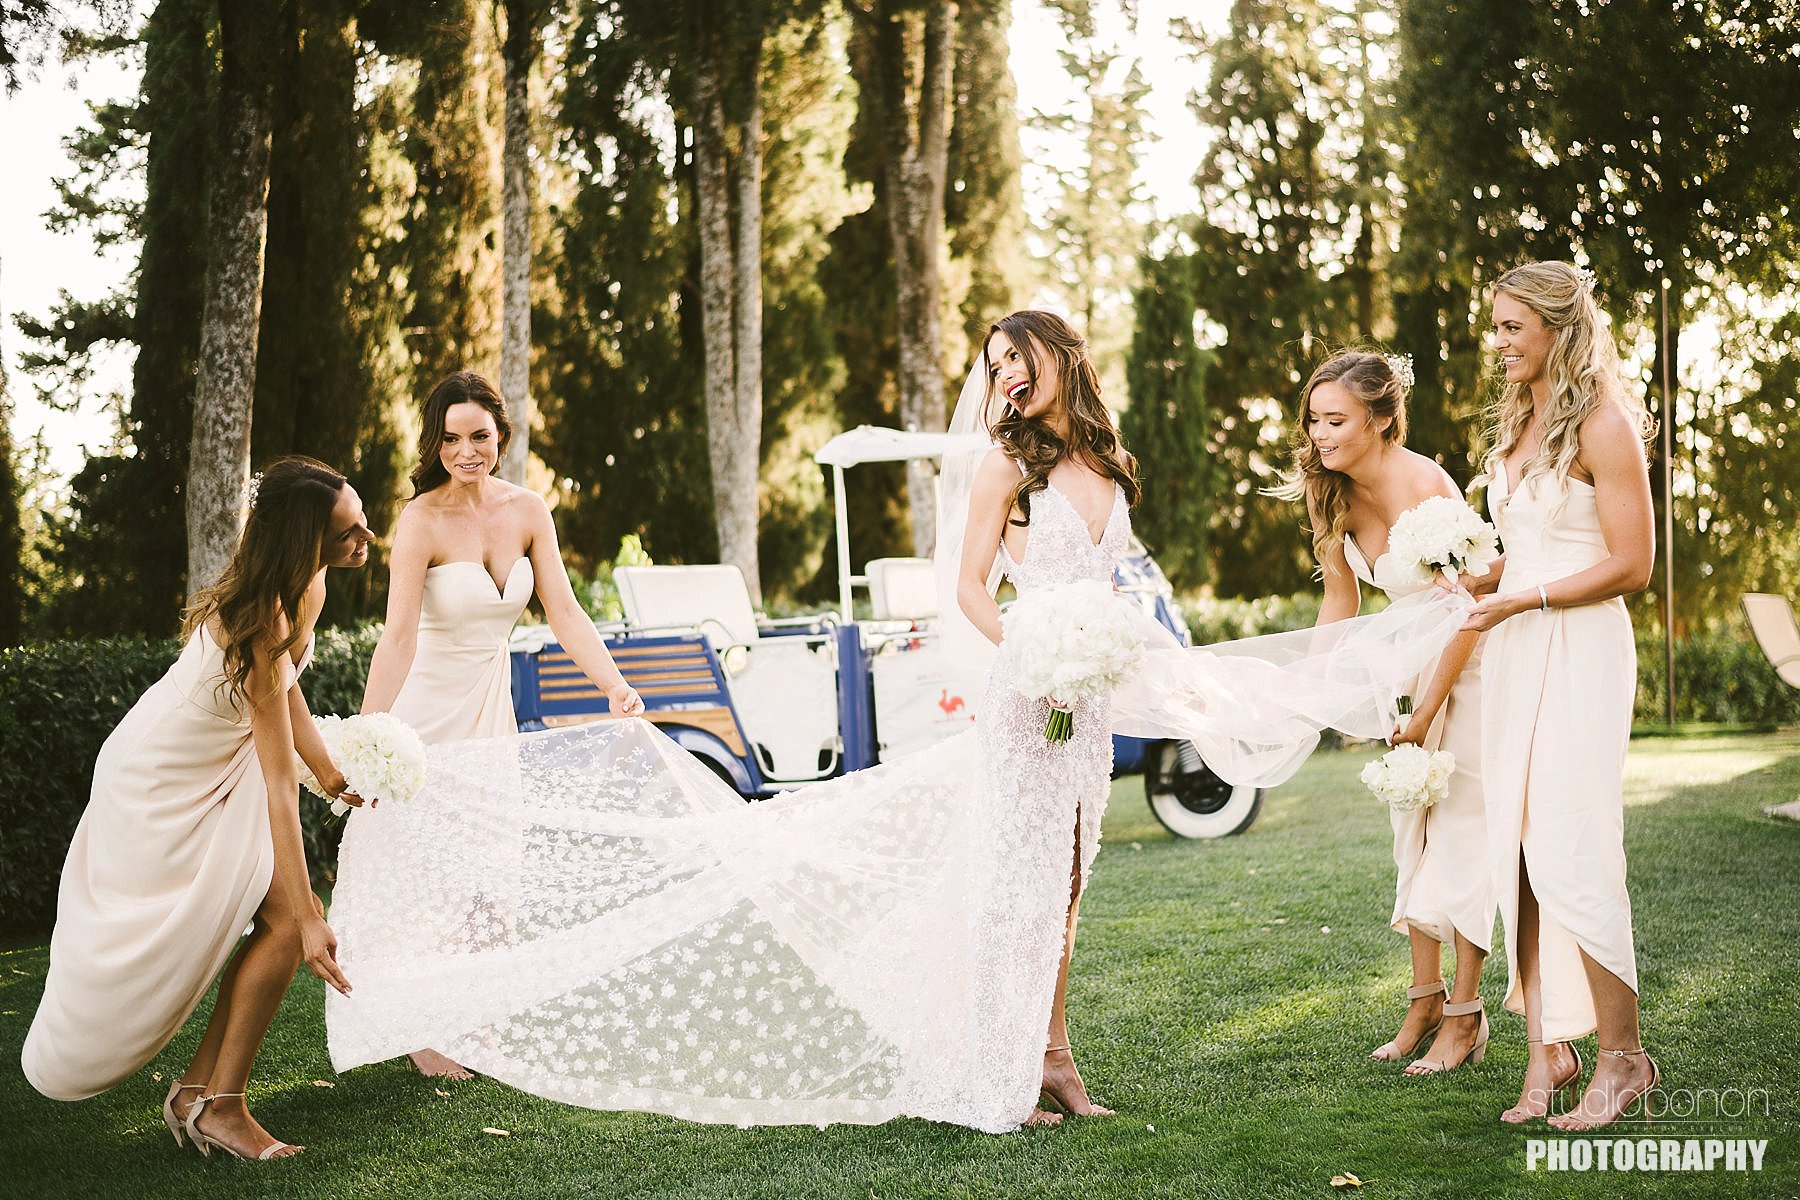 Bride Emily with lovely bridesmaids. Destination wedding in Tuscany countryside near Panzano in Chianti